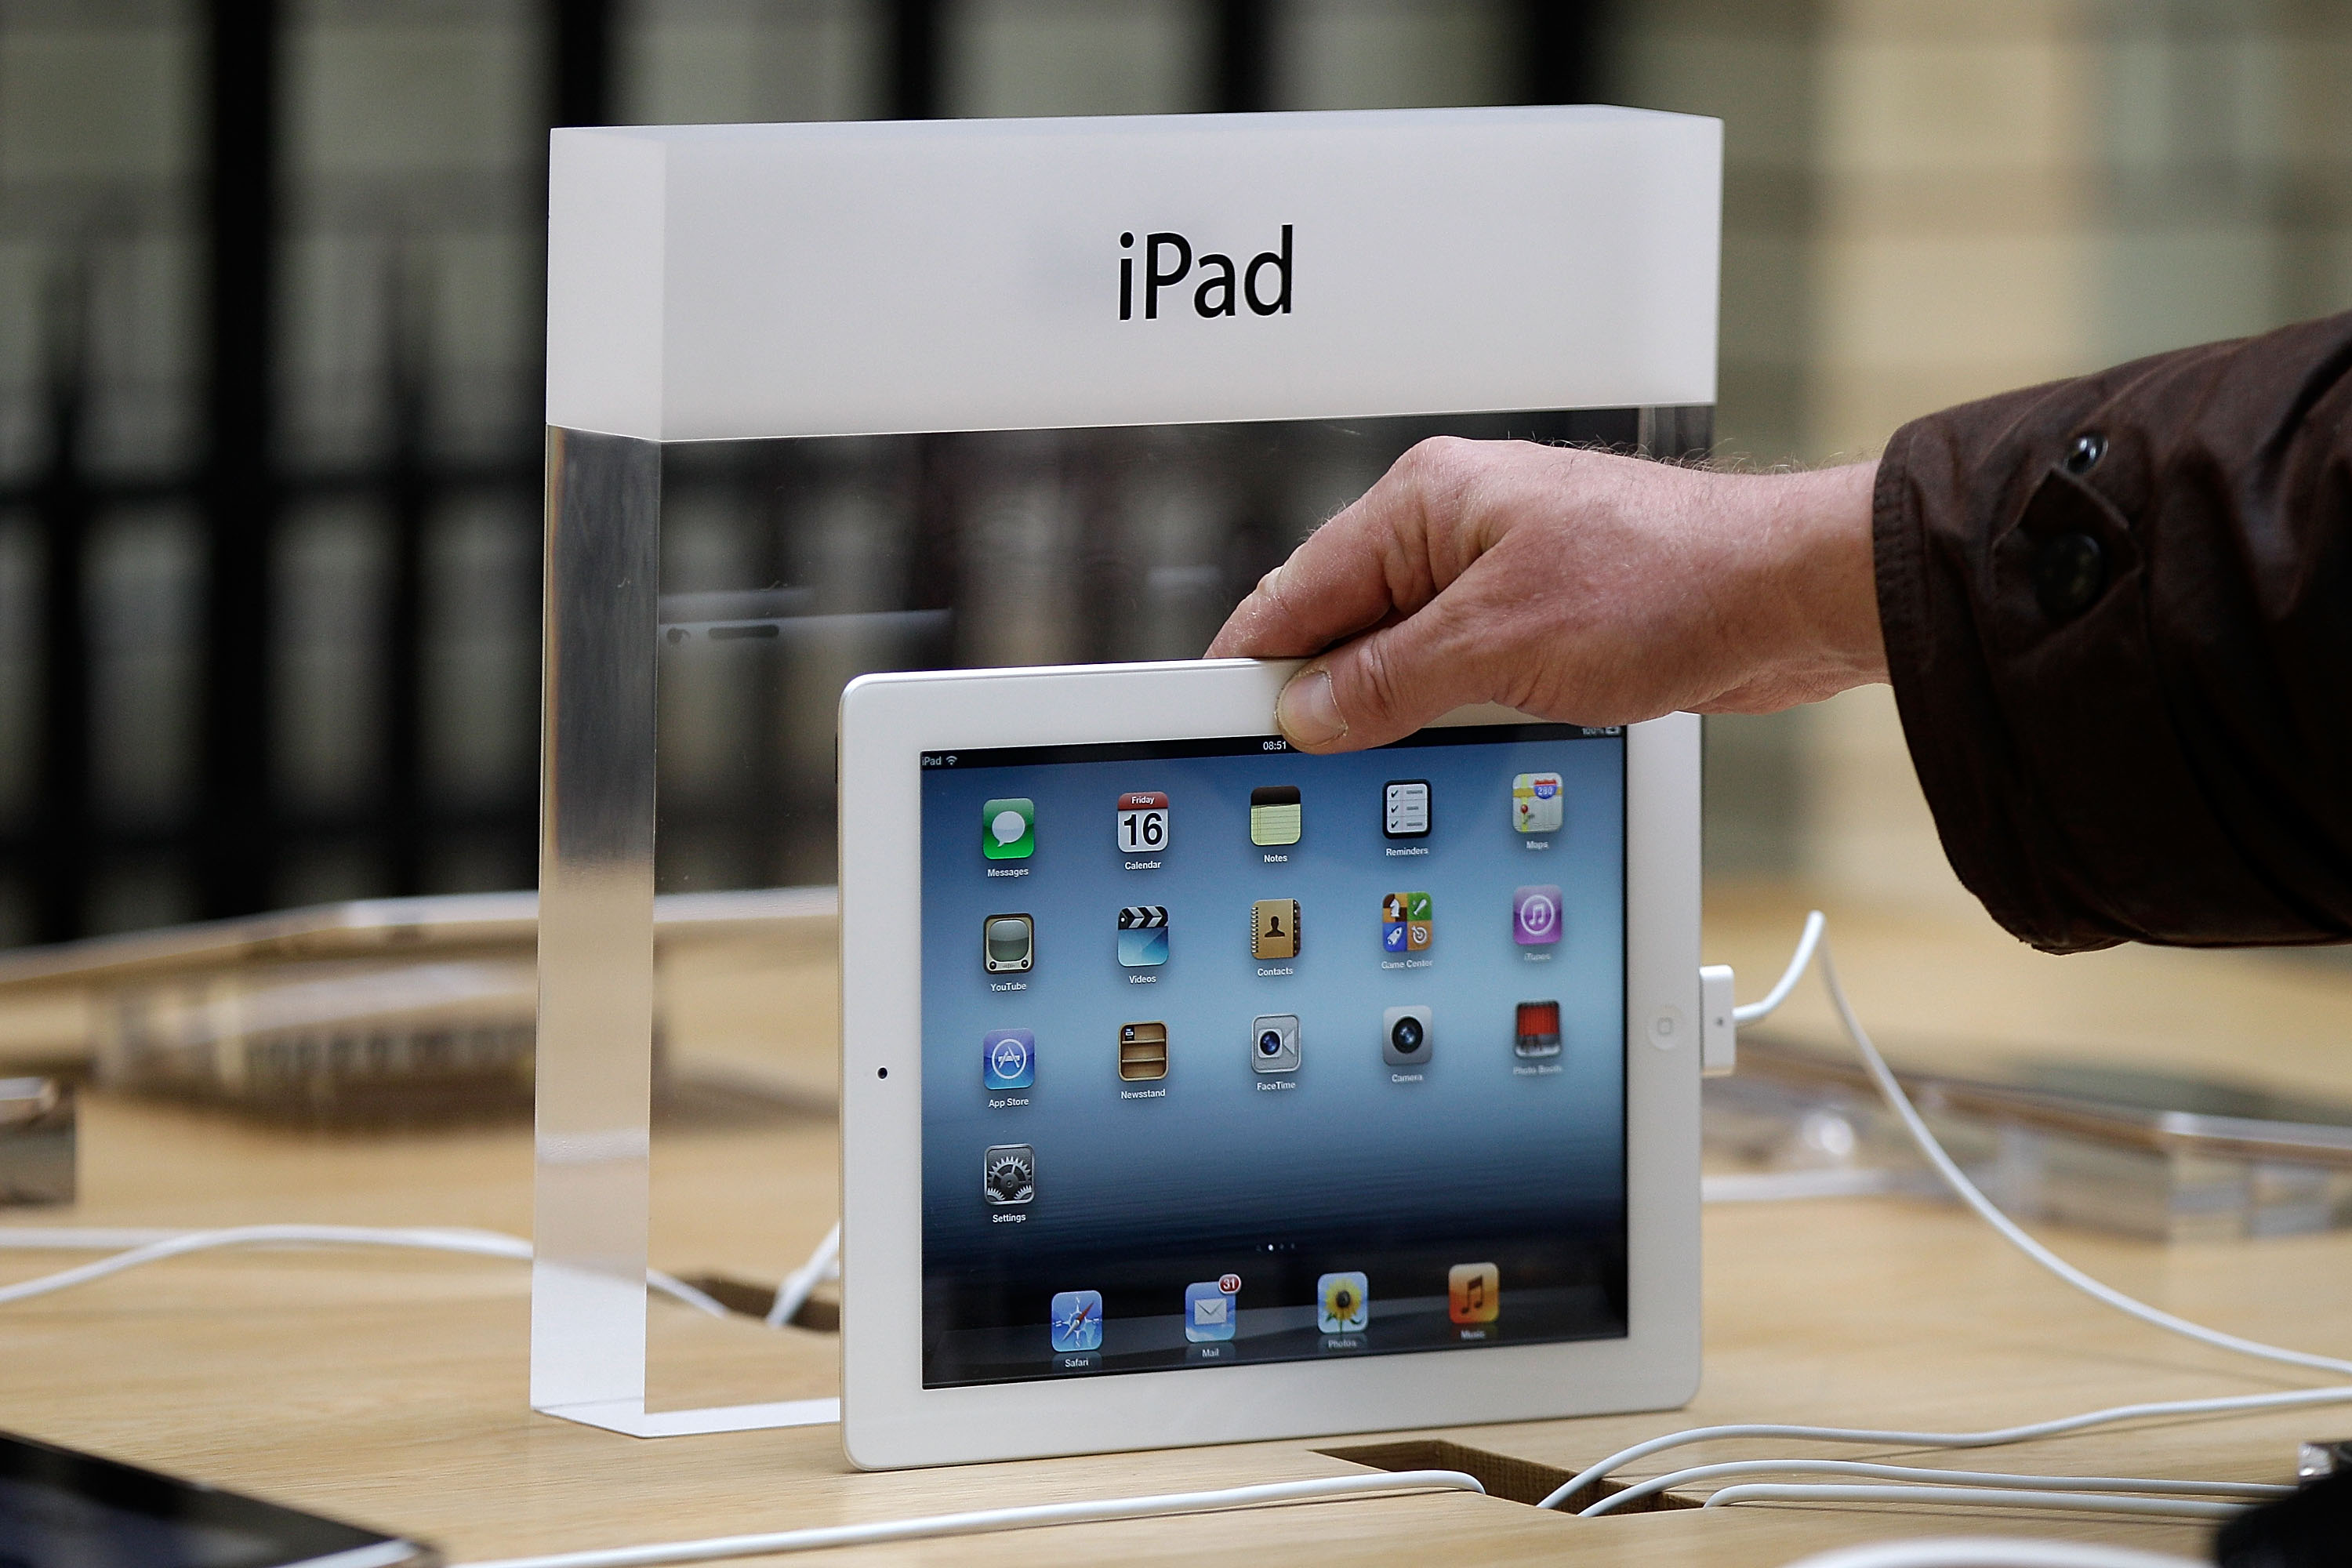 Apple said to have ordered over 10m 'iPad minis' from suppliers this quarter